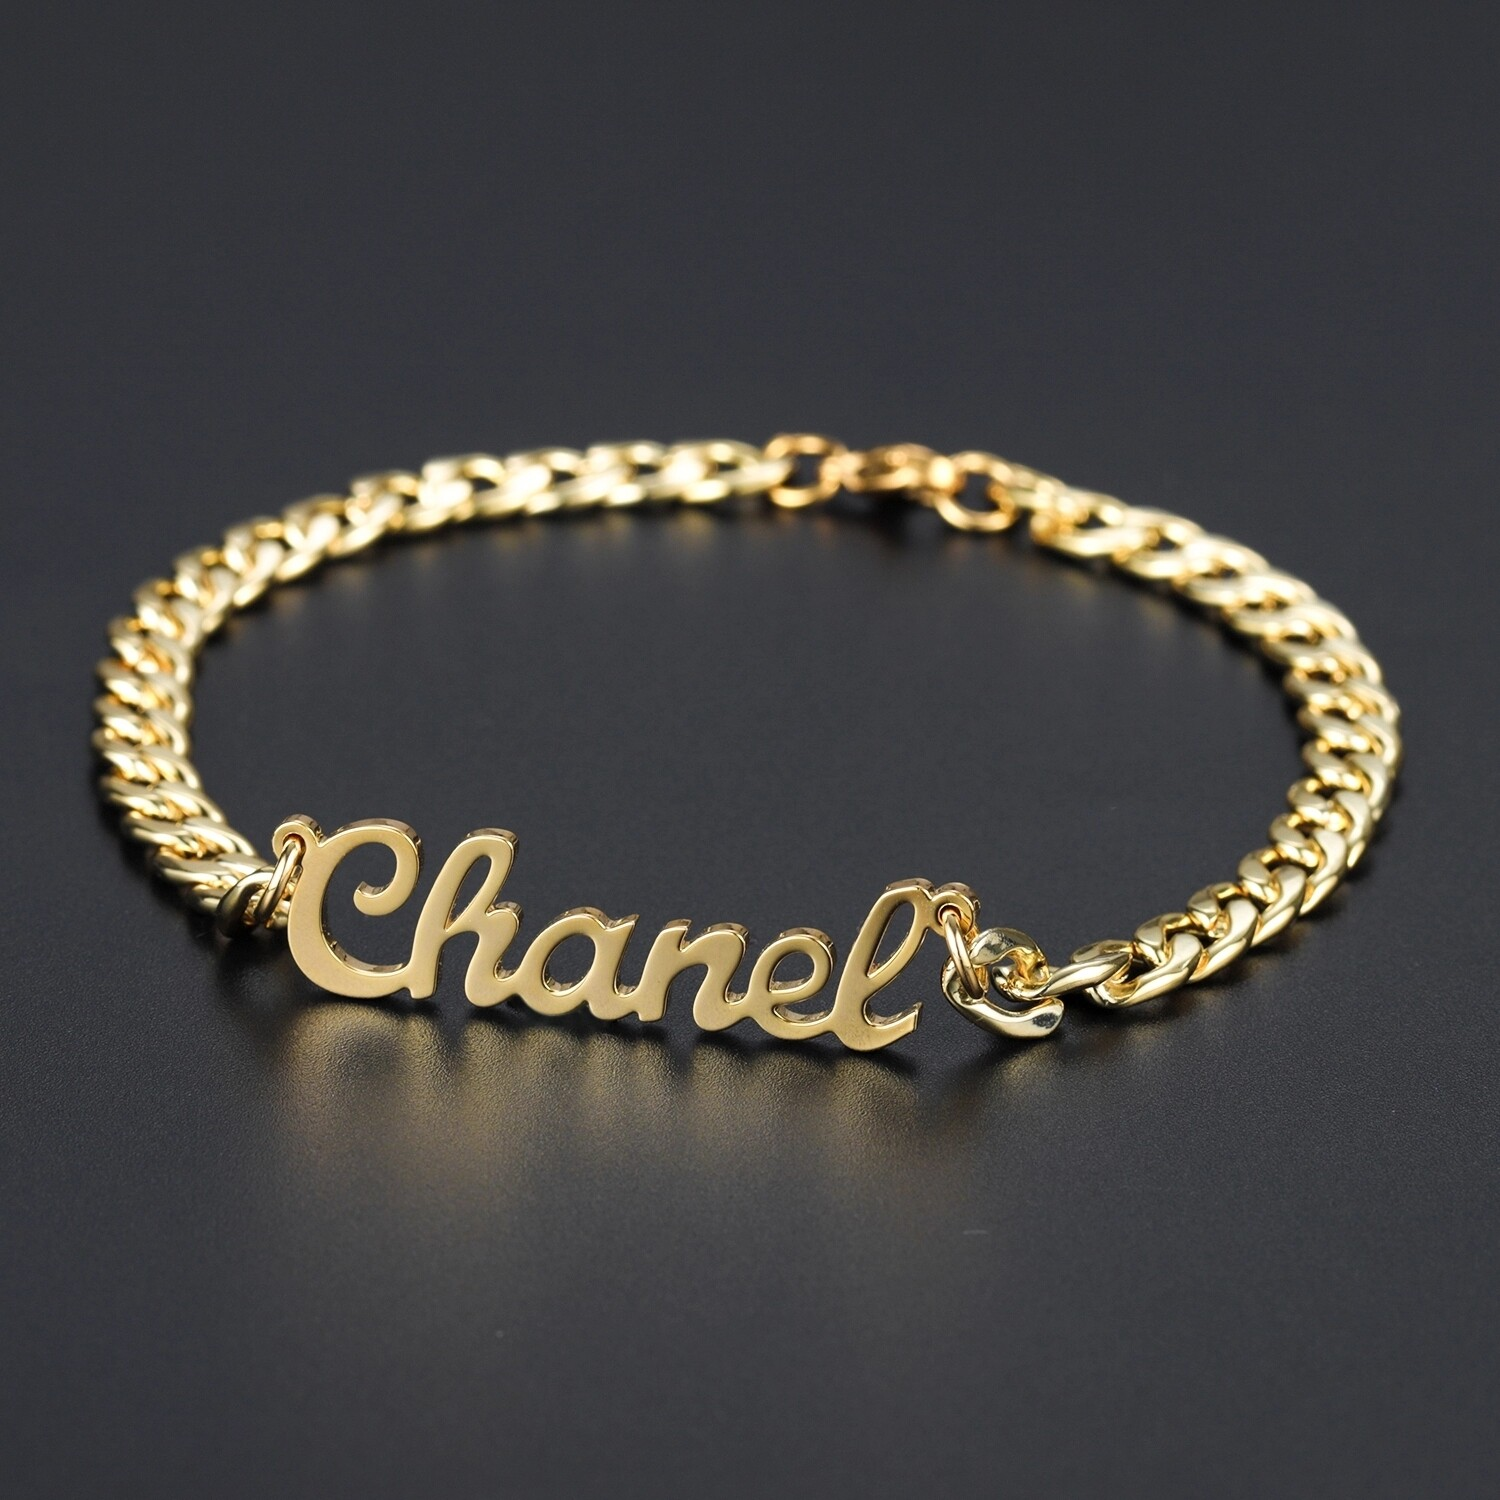 Personalized Name Bracelet 18K Gold Plated Stainless Steel Curb Chain